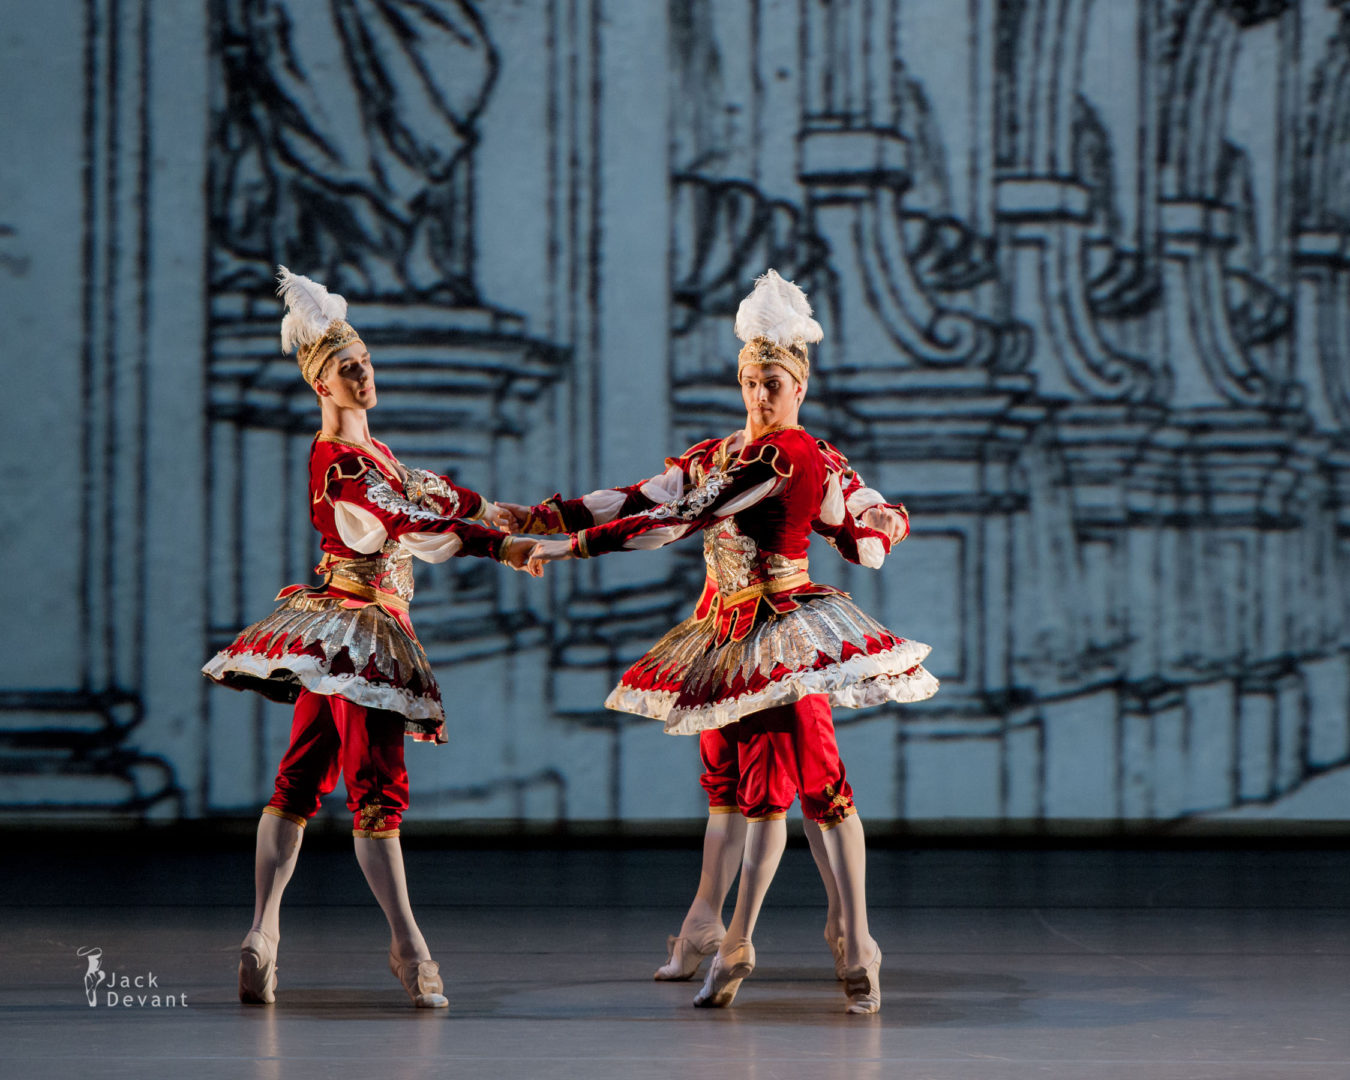 Philipp Stepin, Soslan Kulaev, Denis Zainetdinov, Evgeny Konovalov, Alexander Saveliev, Vasily Tkachenko in Divertissement of the King, music by Jean-Philippe Rameau, choreography by Maxim Petrov.